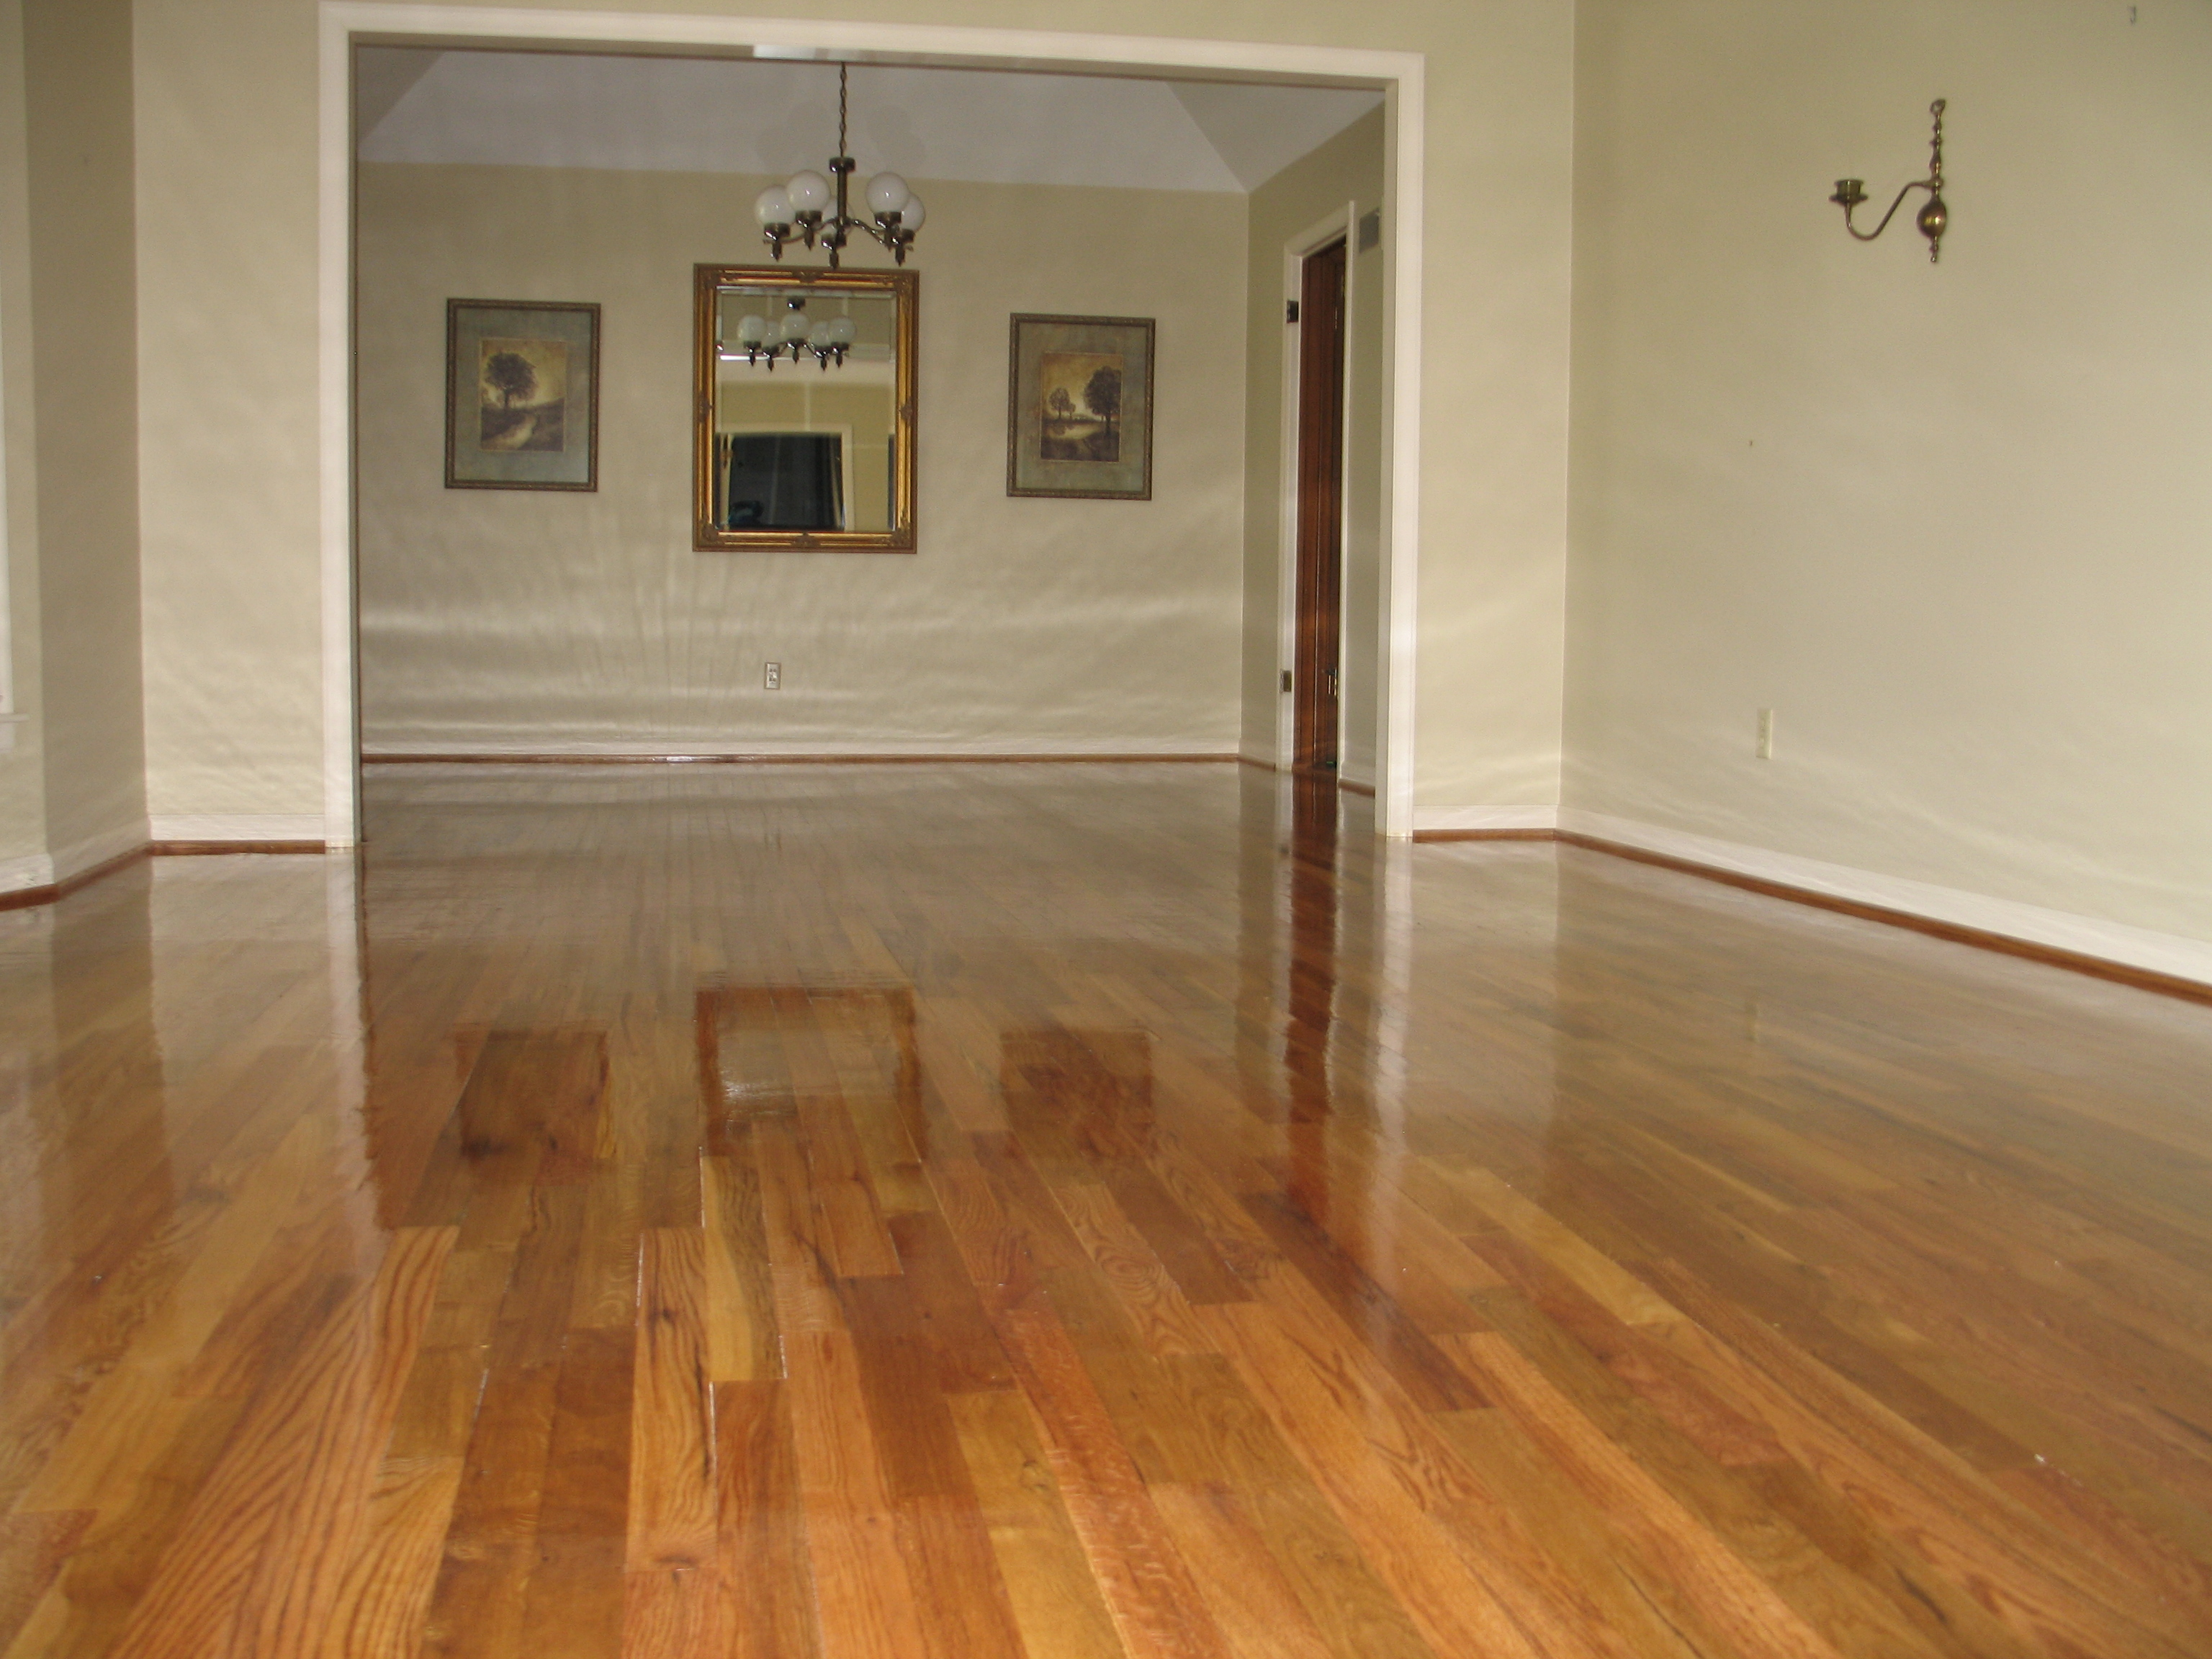 Refinish hardwood floors refinish hardwood floors prices for Wood floor refinishing